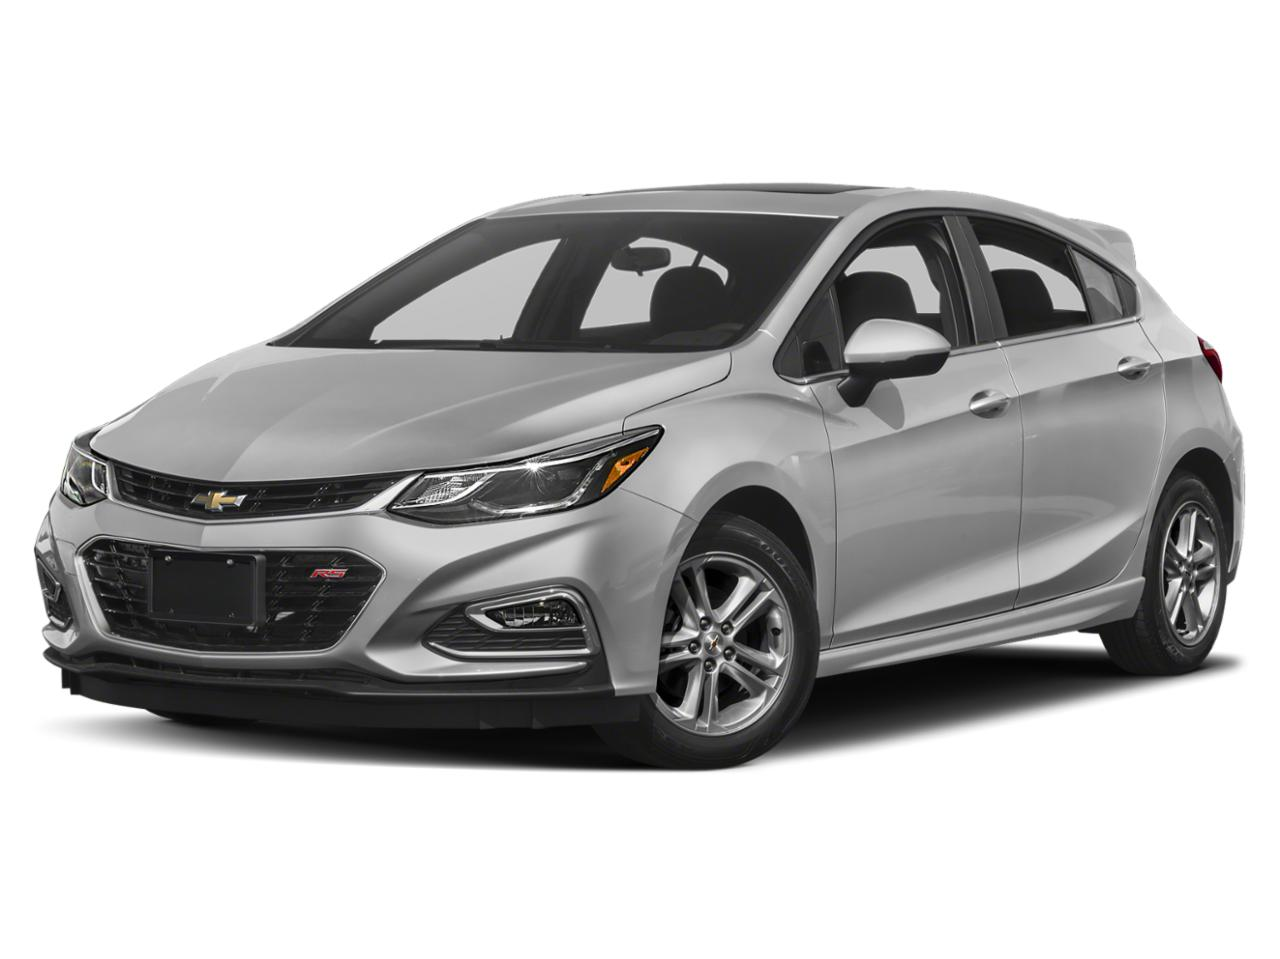 2018 Chevrolet Cruze Vehicle Photo in Pahrump, NV 89048